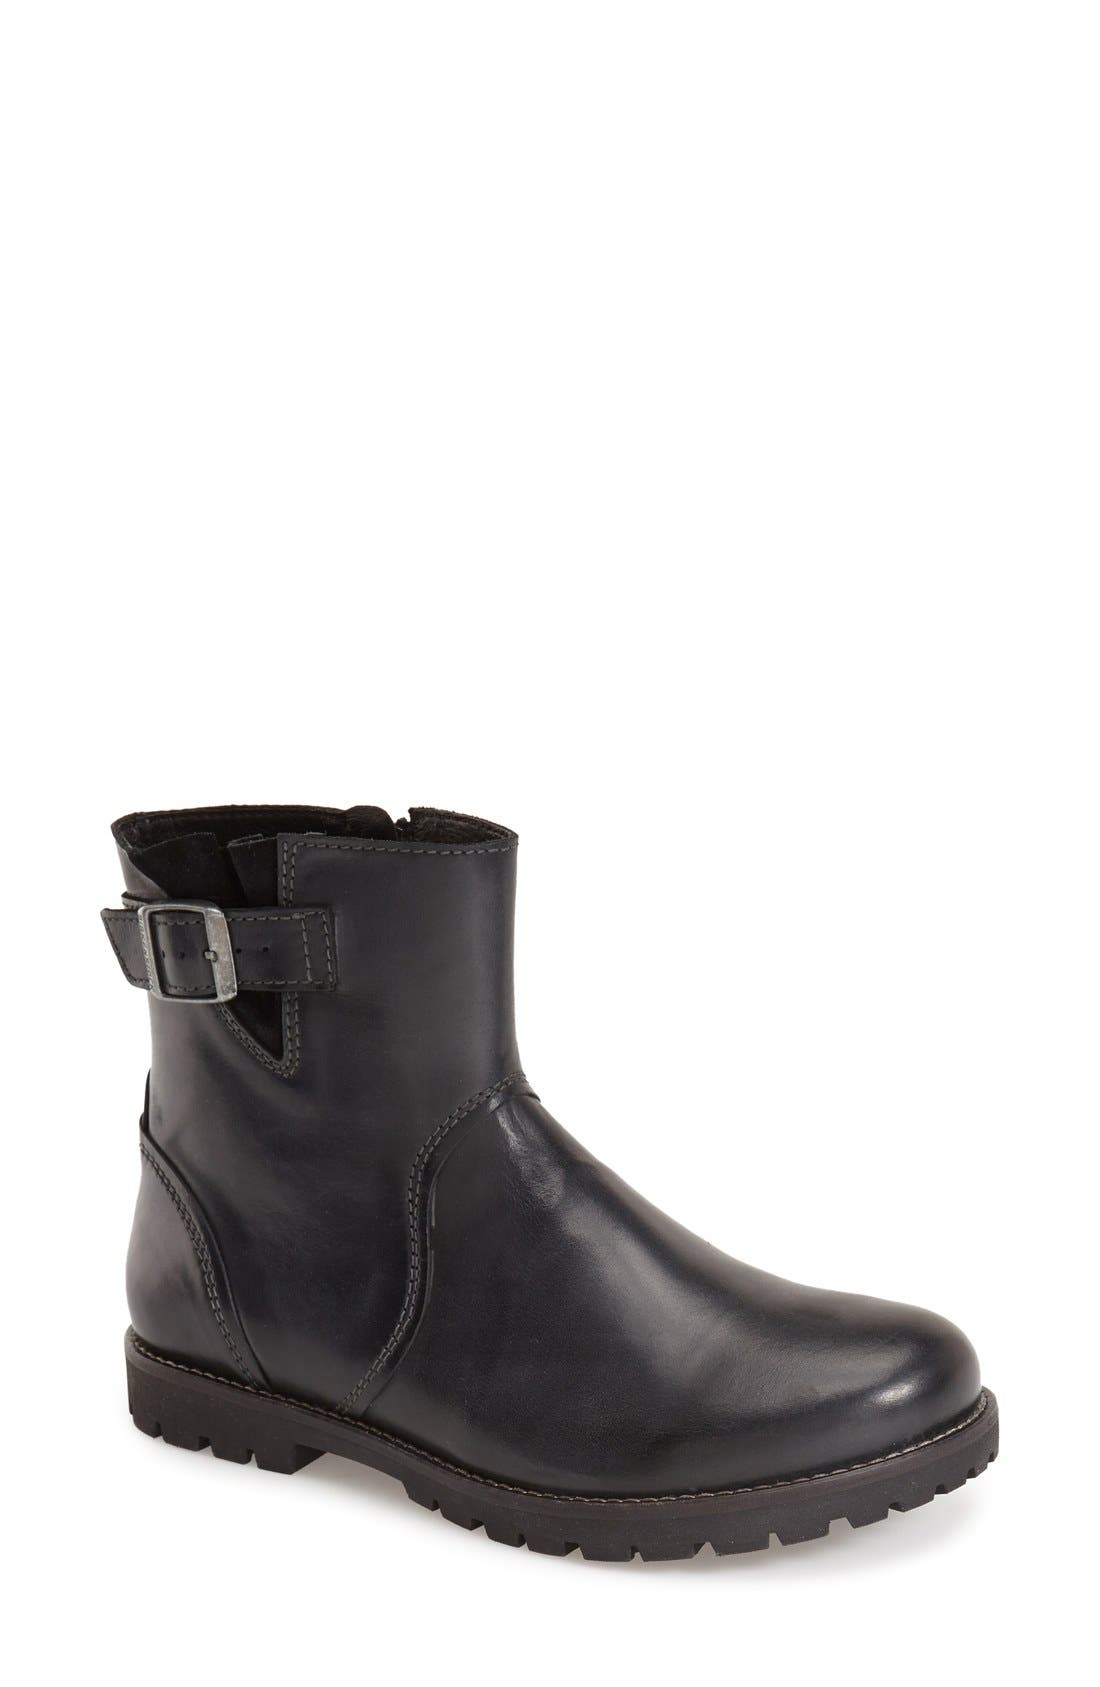 'Stowe' Boot,                         Main,                         color, 001